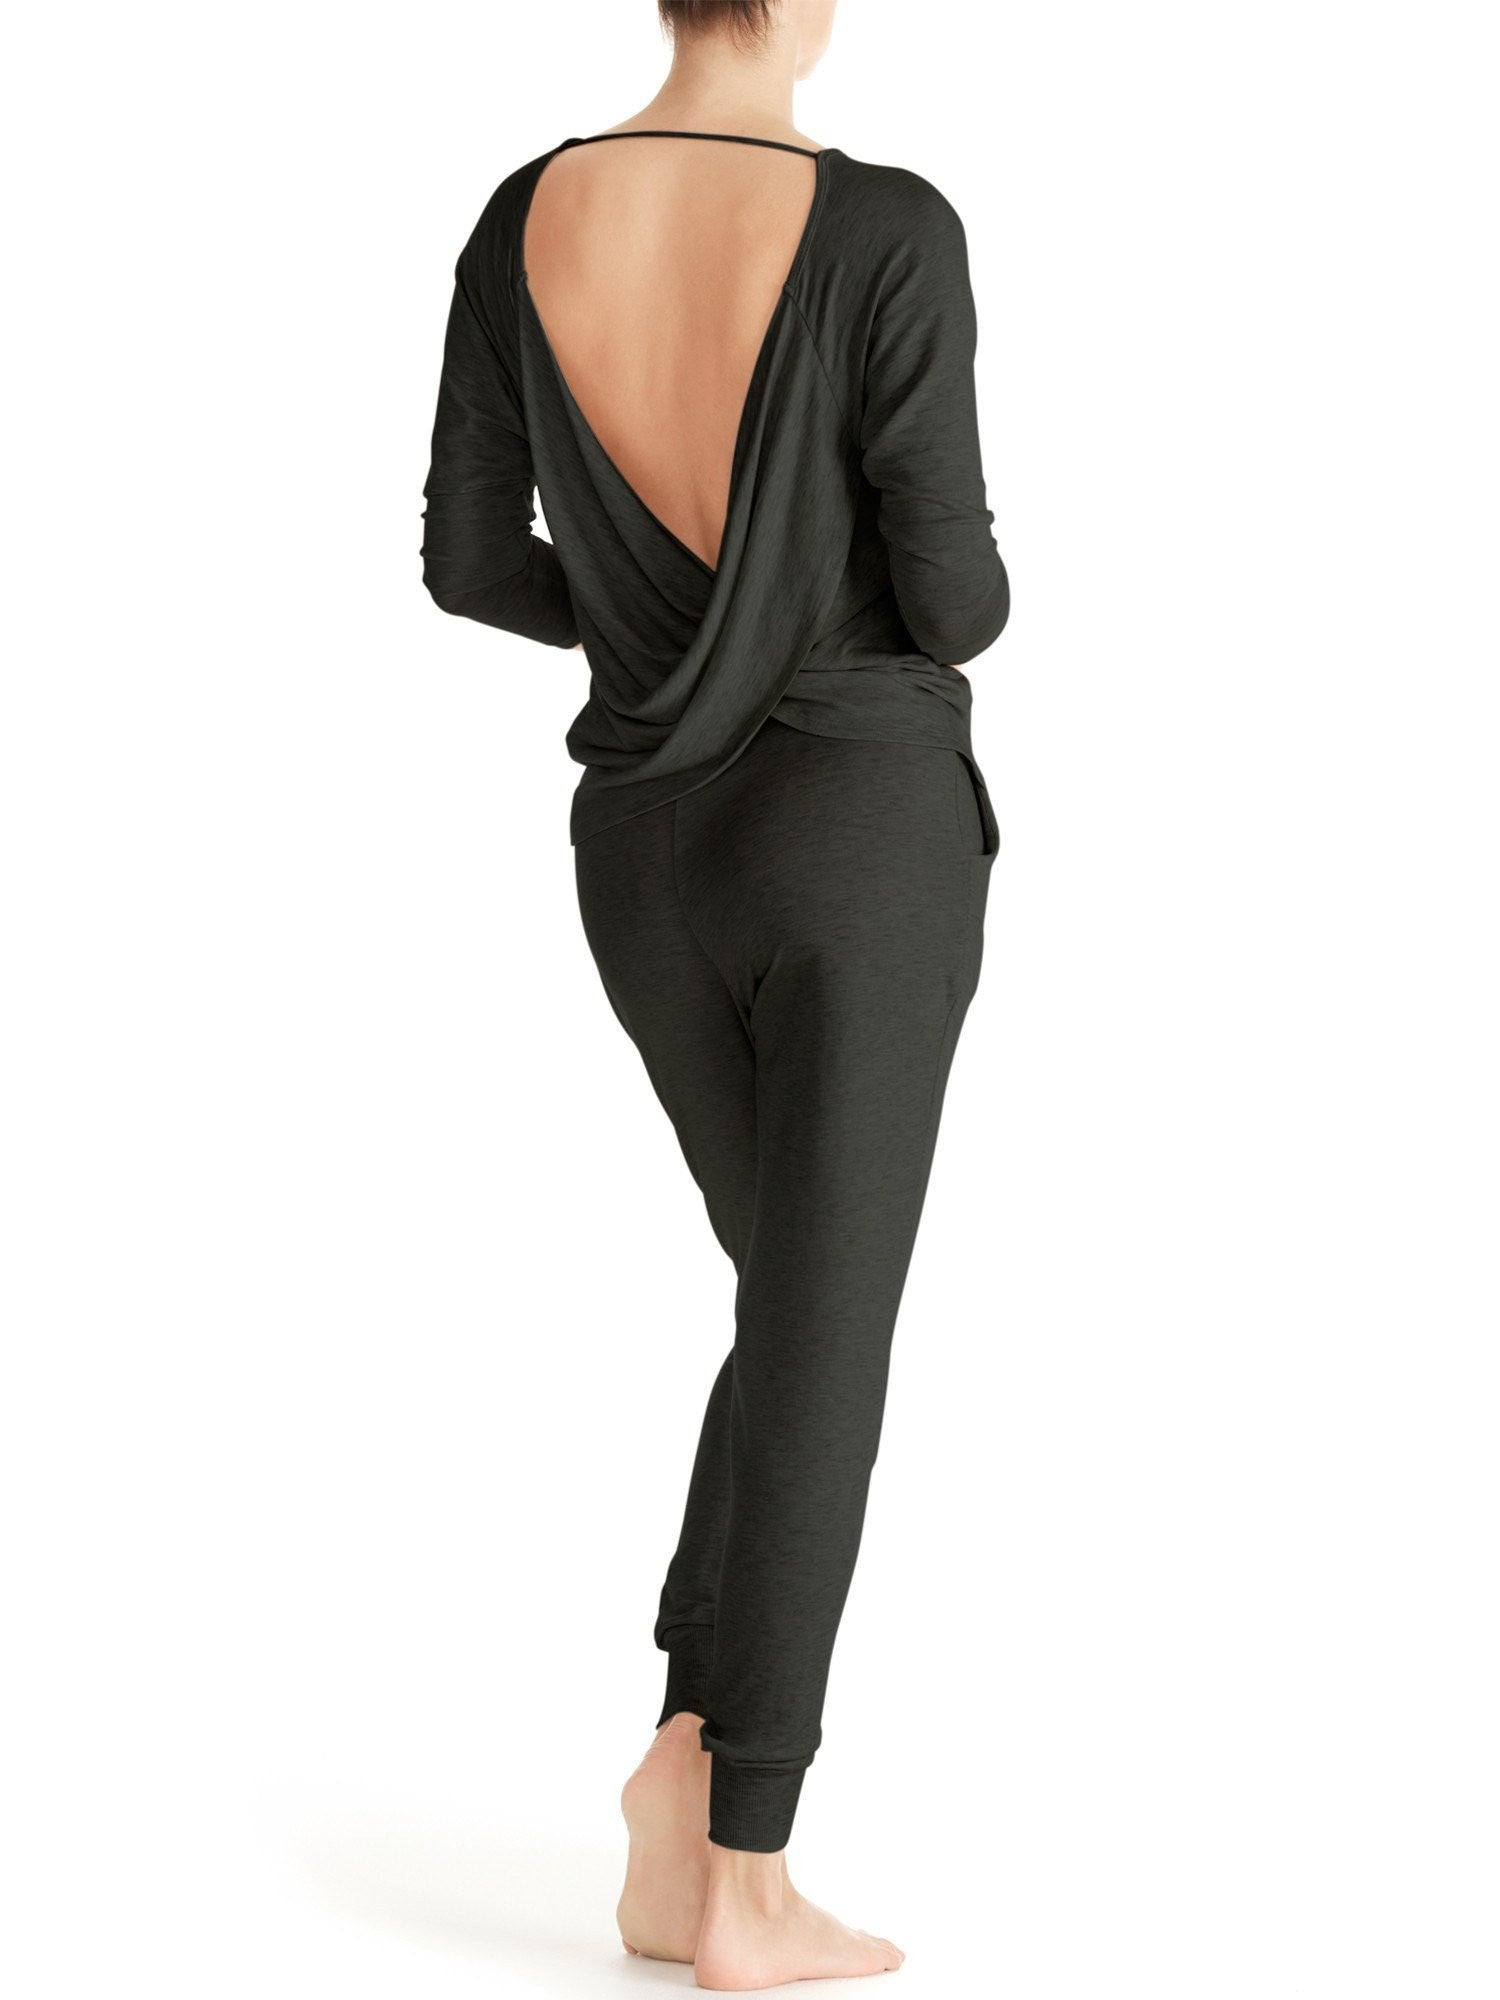 Ava Twist Back Top - NEW COLOR Tops by Le Marché by NP